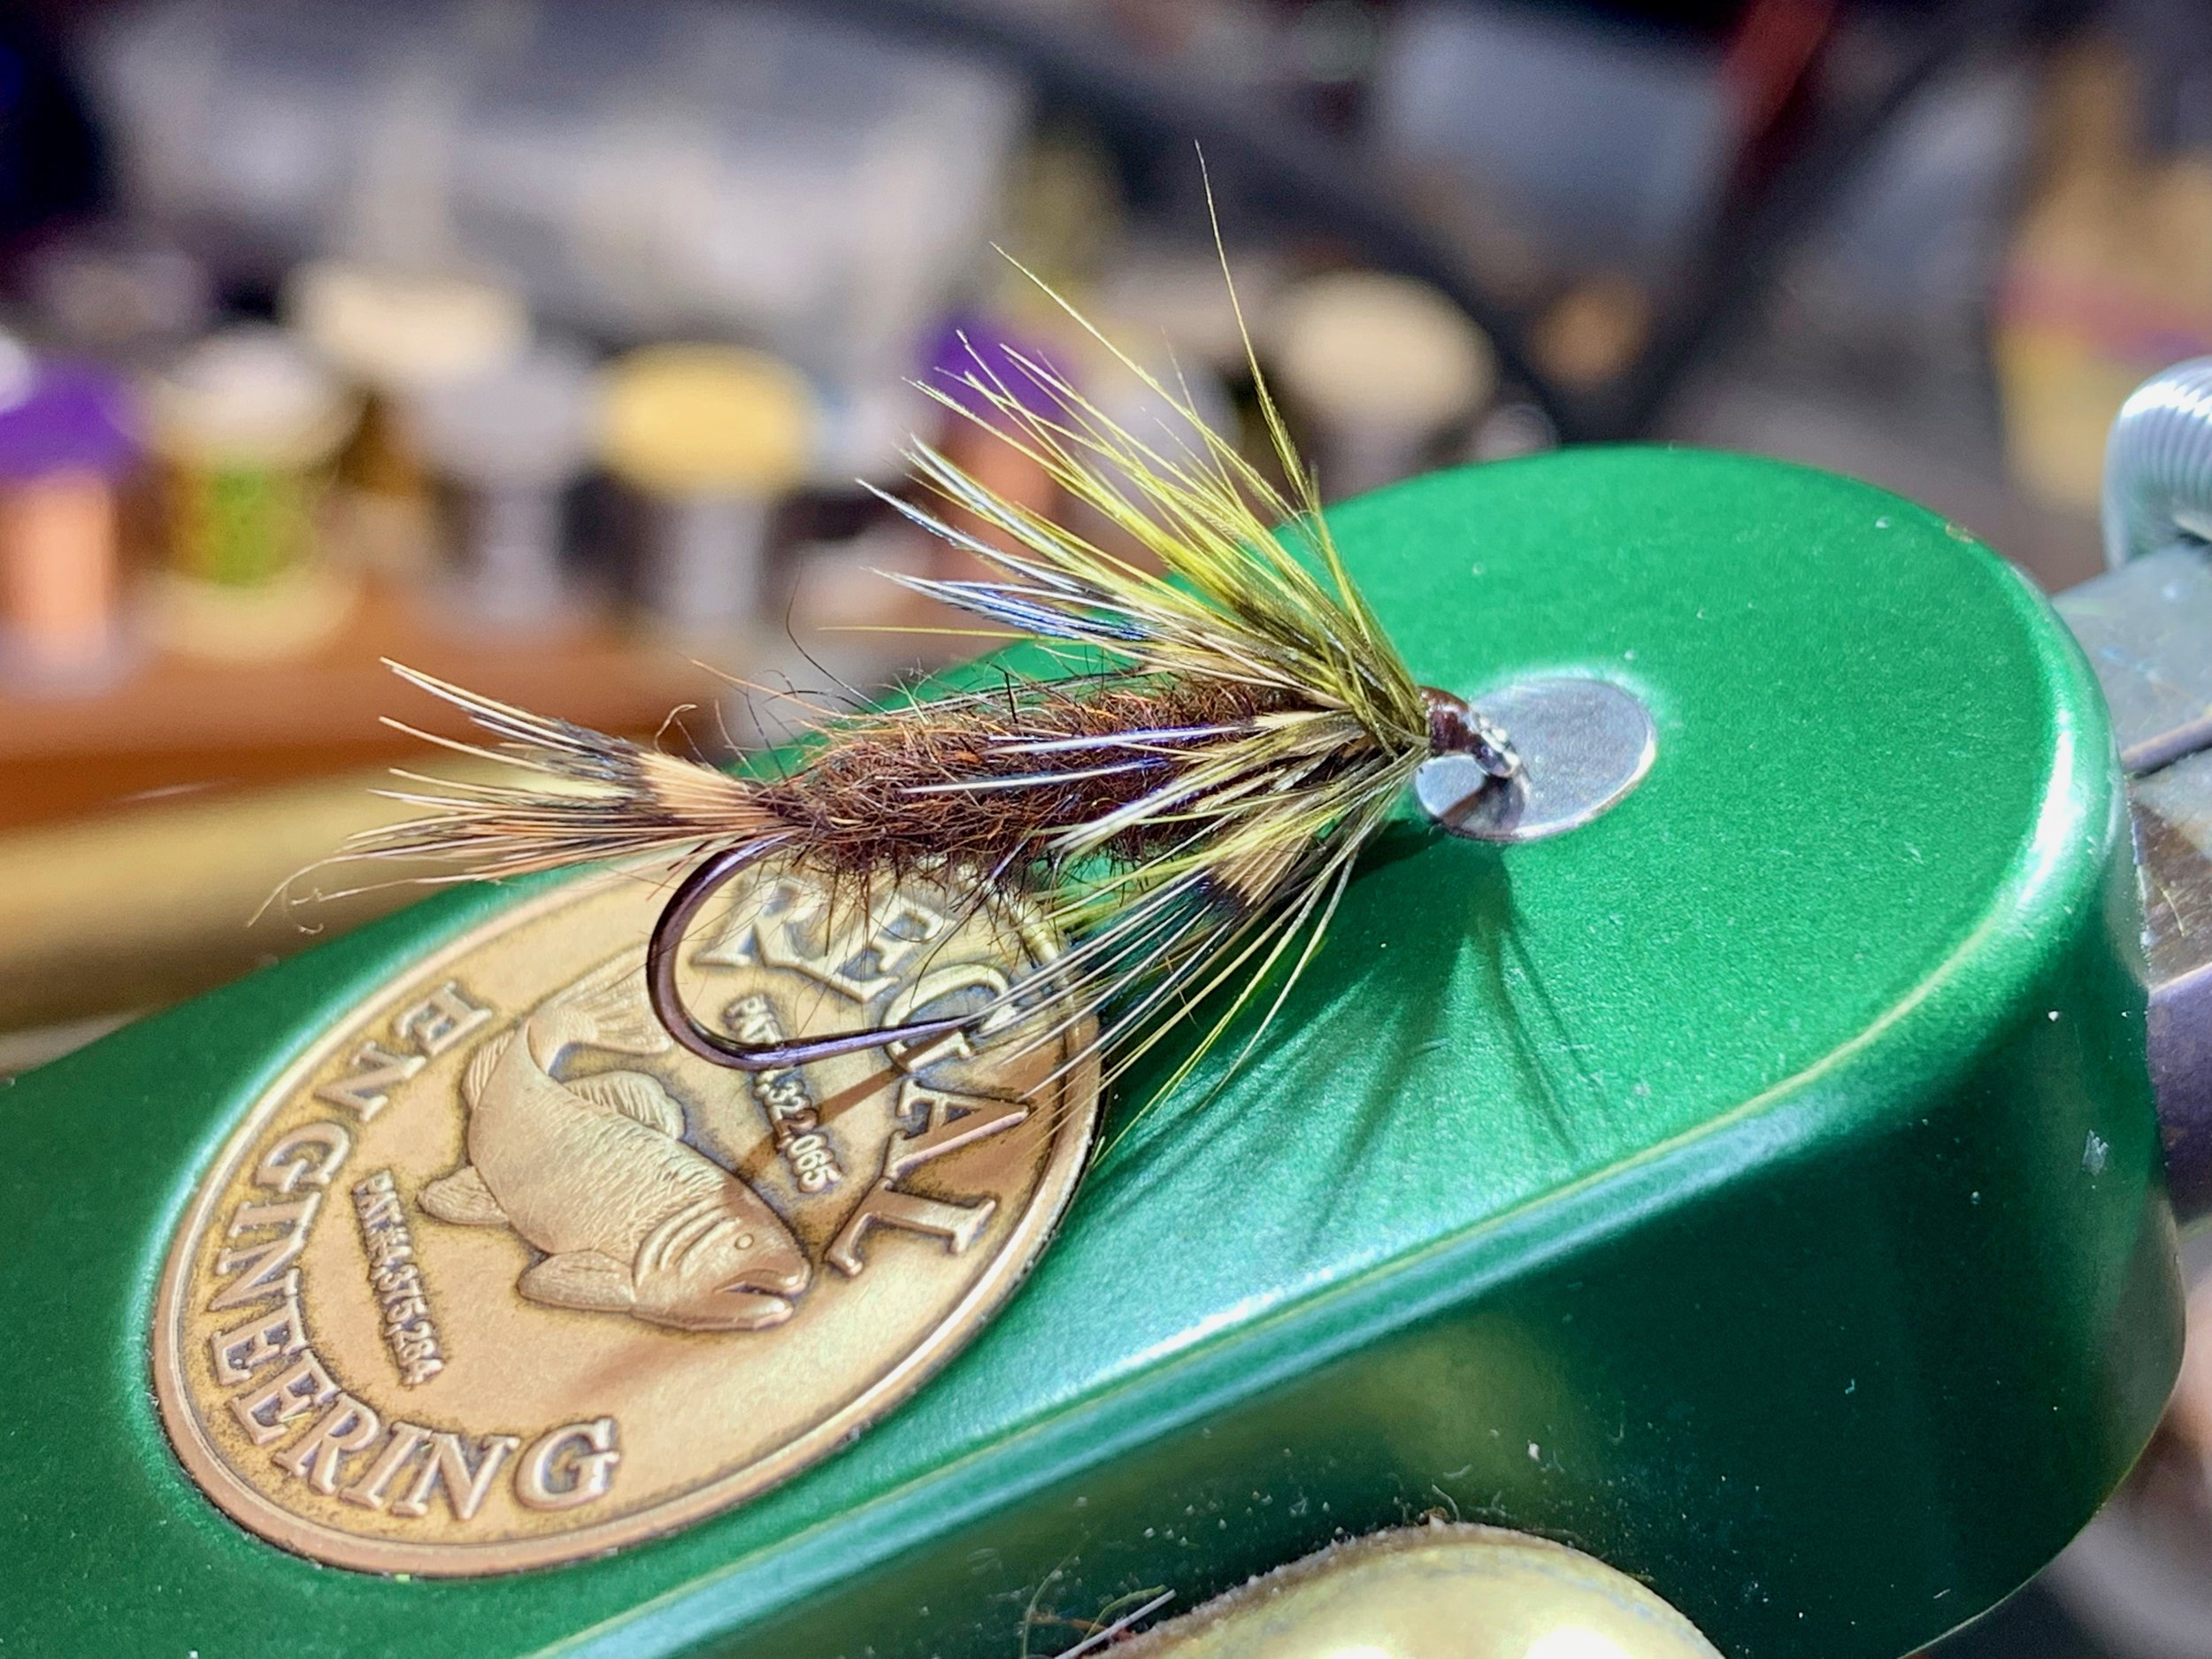 Ward Bean's Cockaroo is mix between a nymph and and a wet fly and can be fished either way. Tied on a size six hook it is a great searching pattern for large panfish.